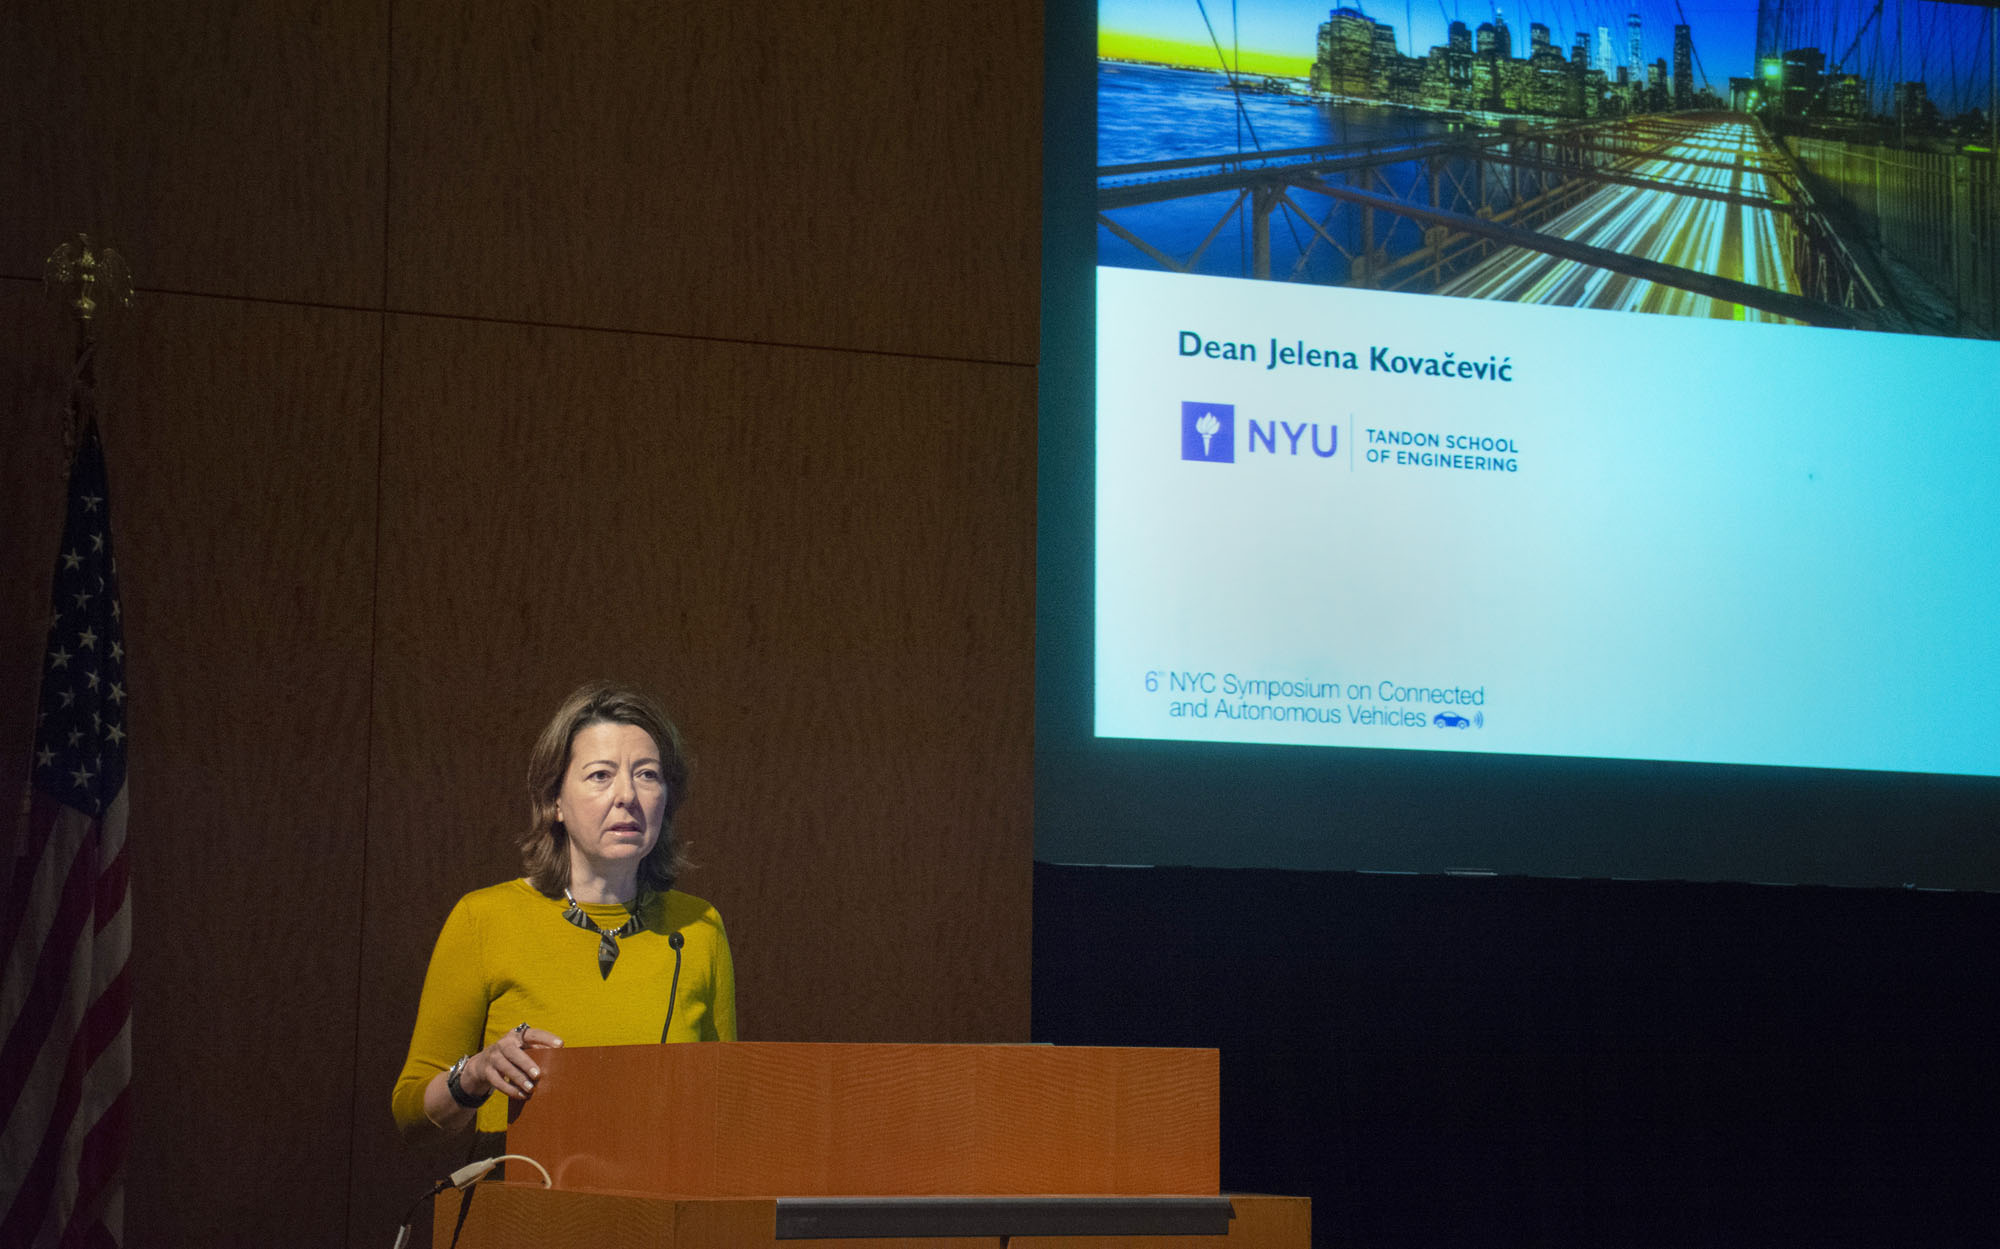 NYU Tandon Dean Jelena Kovacevic welcomes attendees at the beginning of the two-day symposium.